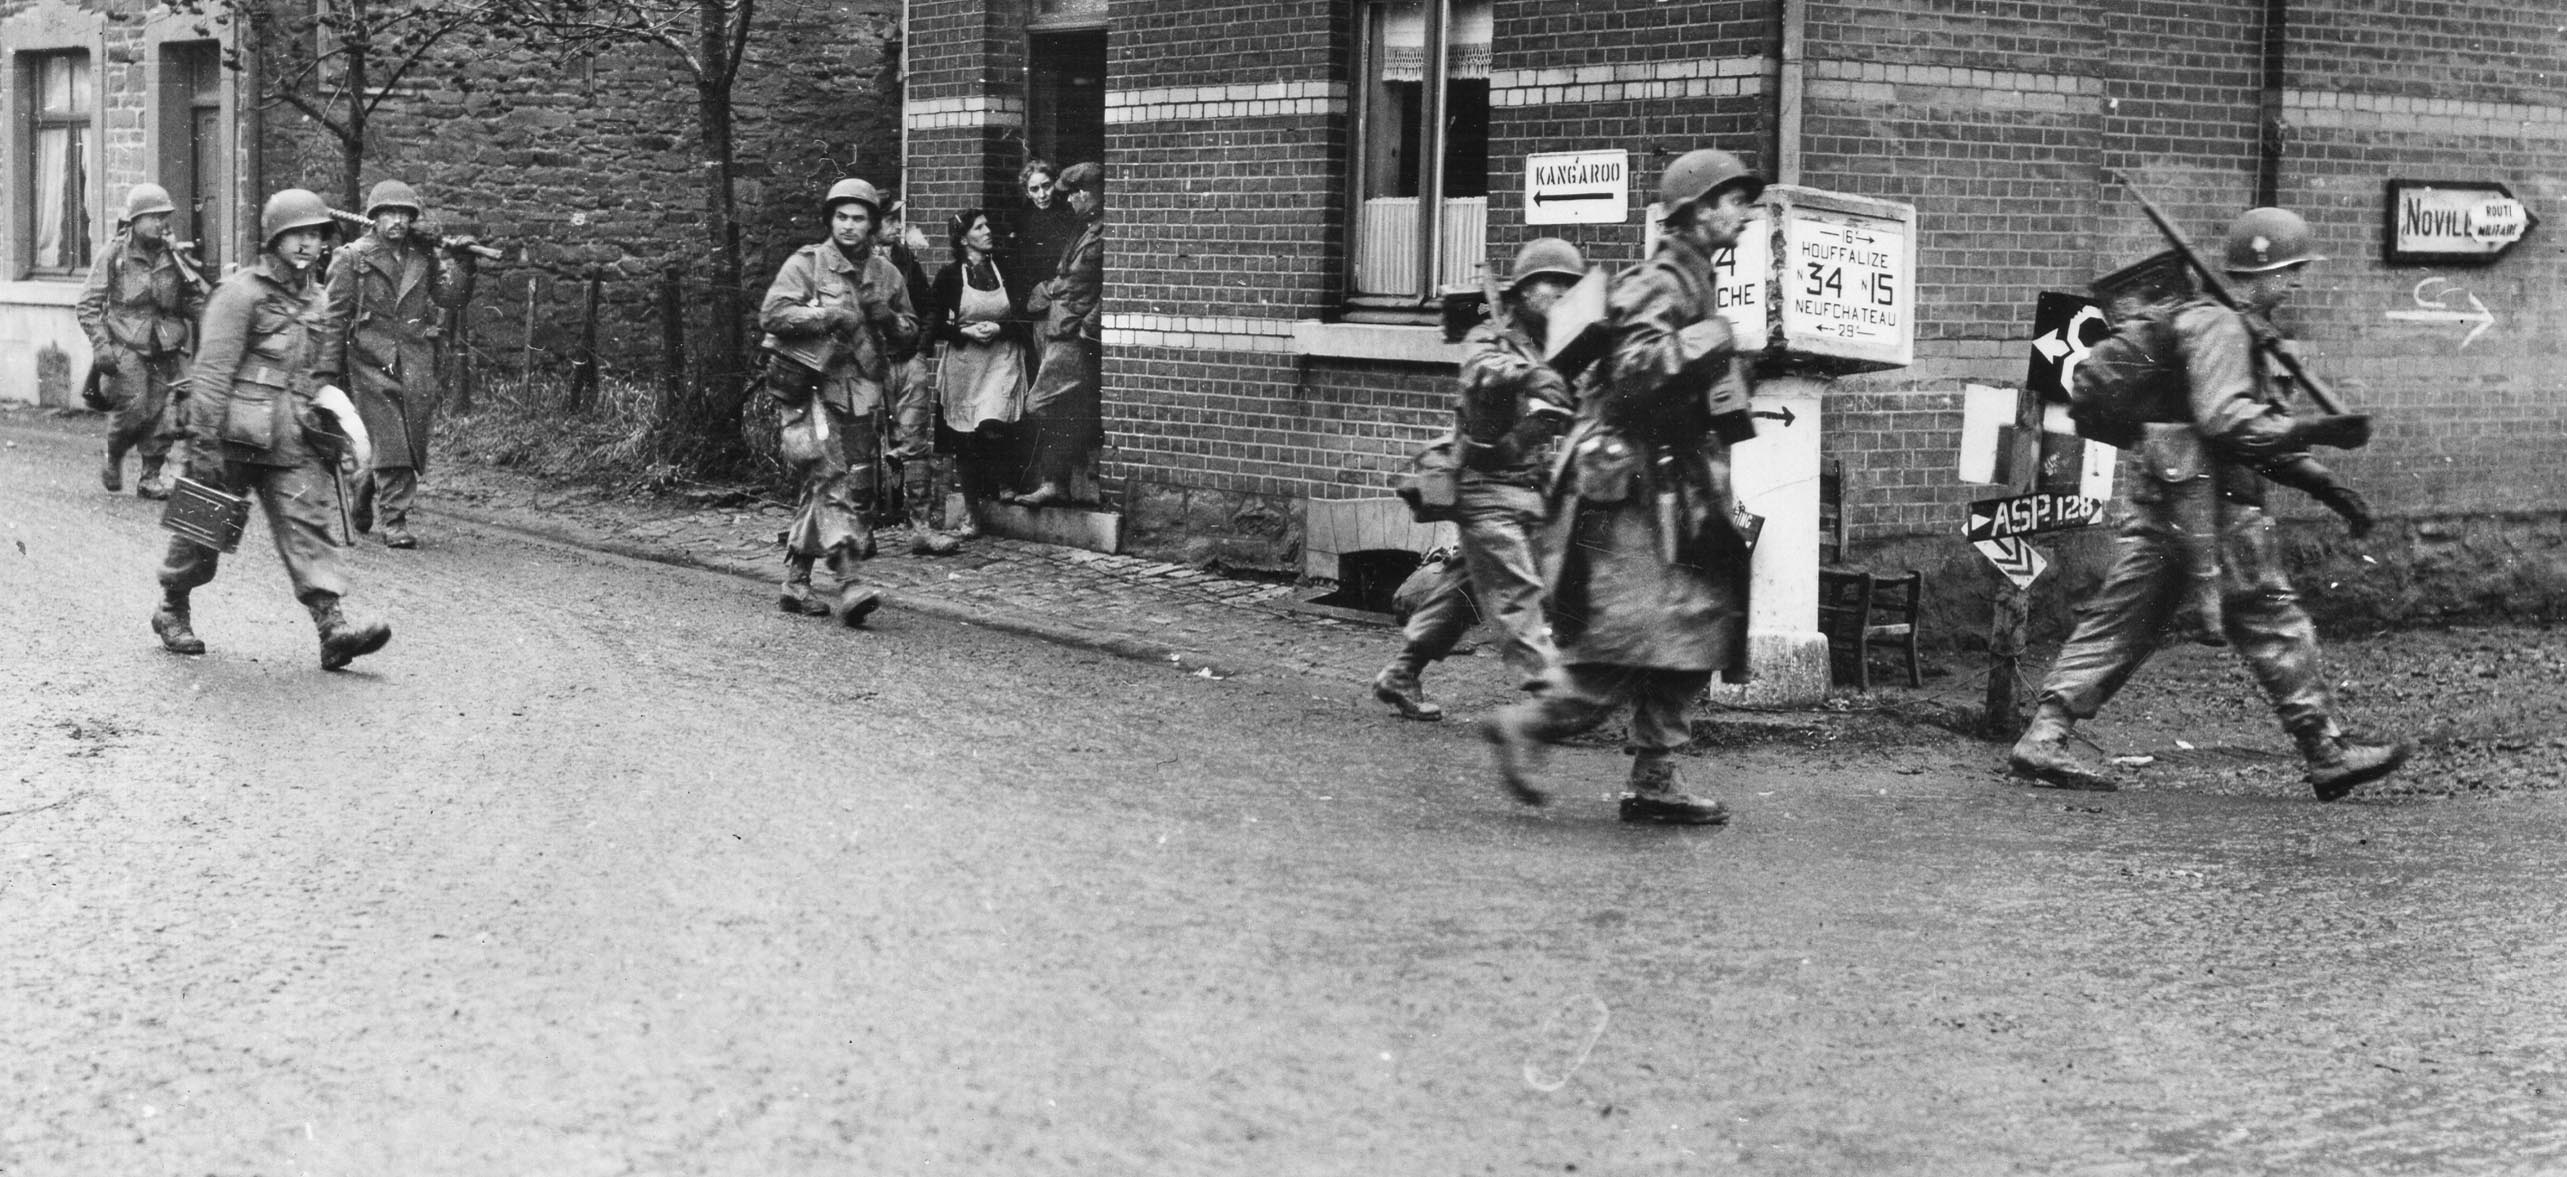 American paratroopers of Colonel Robert Sink's 506th Parachute Infantry Regiment, 101st Airborne Division pass through Bastogne. Sink's 1st Battalion, under Lt. Col. James LaPrade, headed north to help Team Desobry defend Noville.